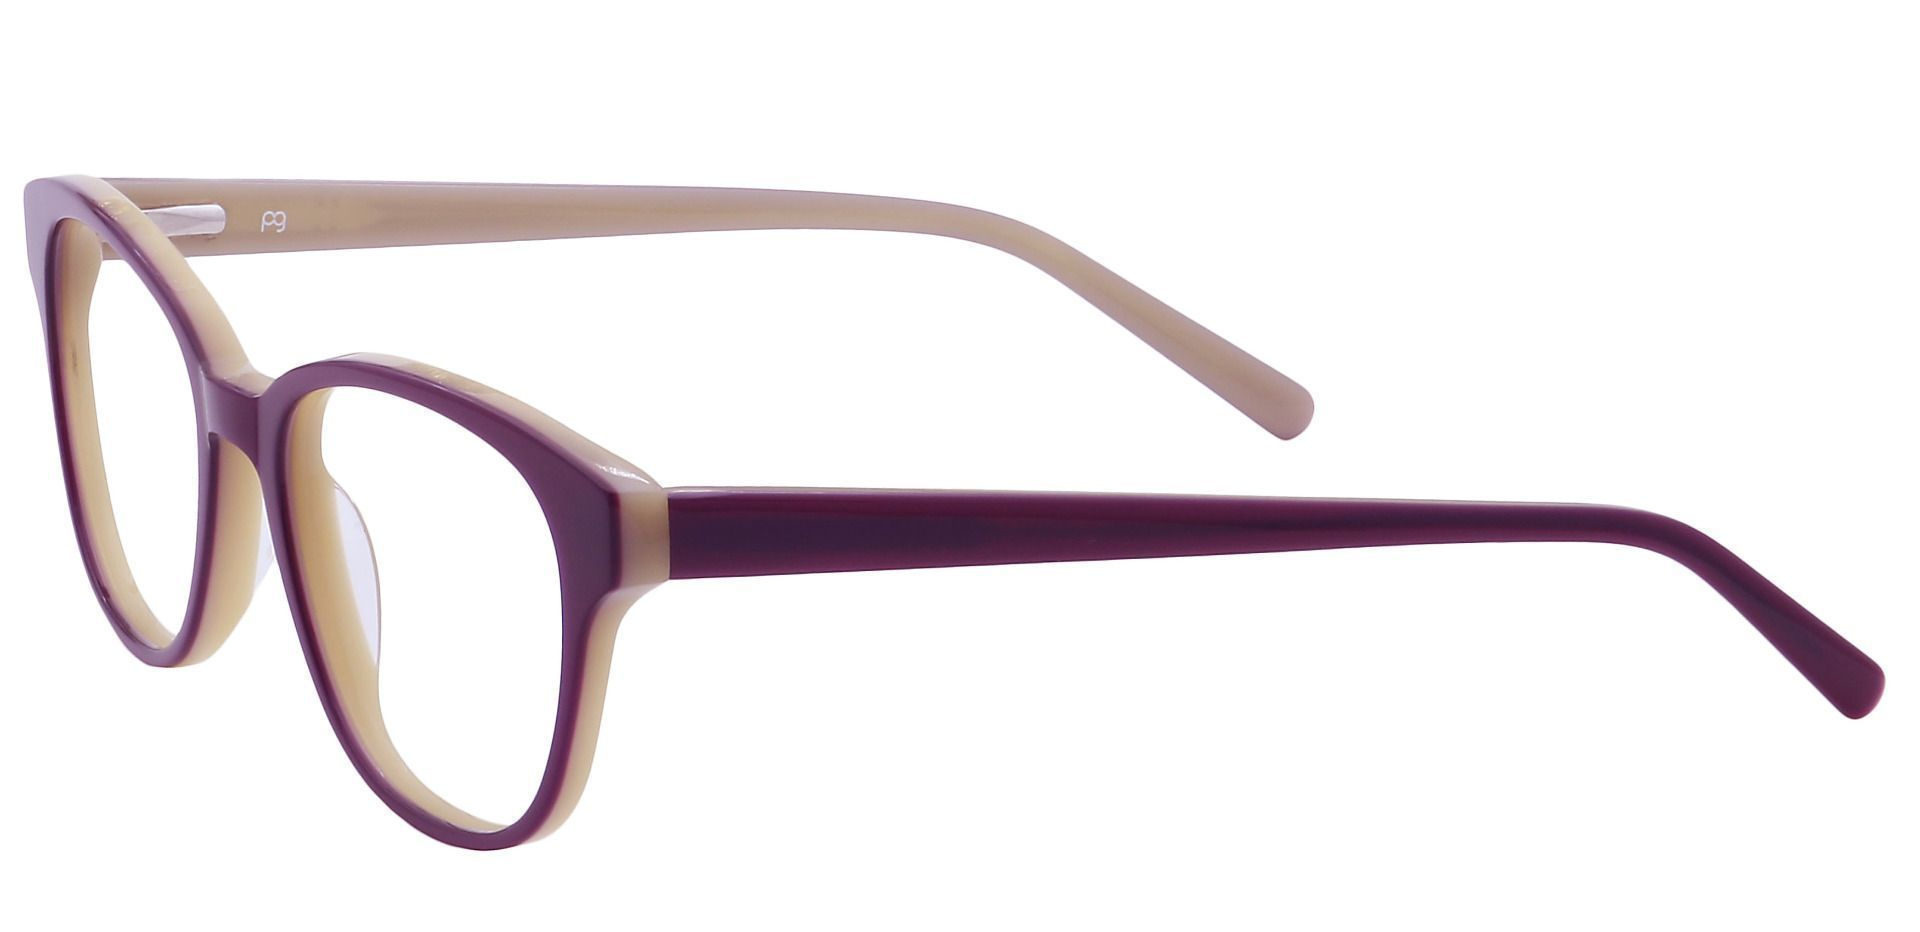 Elan Classic Square Eyeglasses Frame - Purple